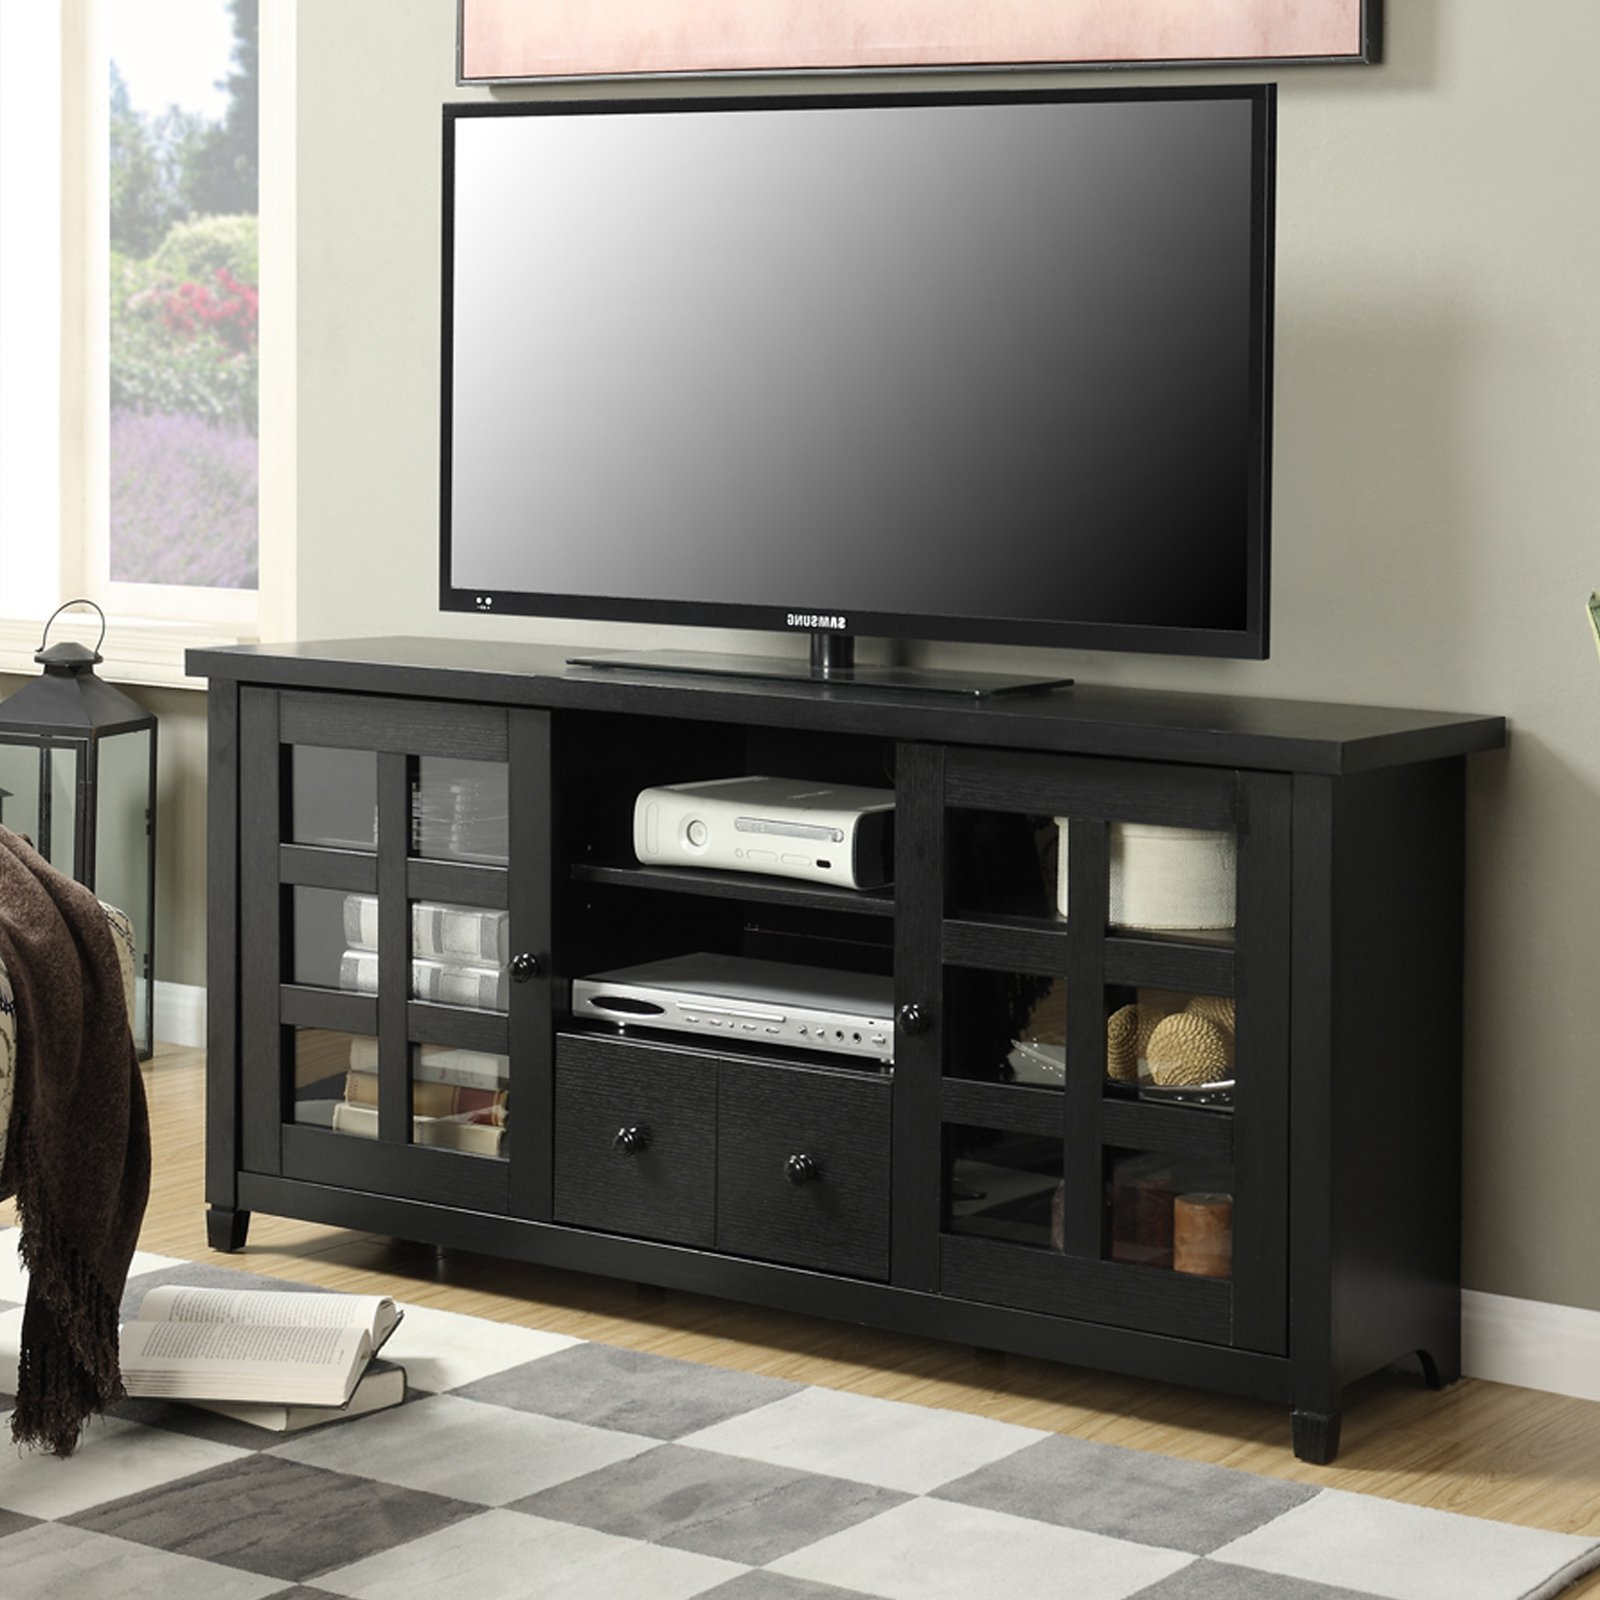 Tv Stands & Entertainment Centers | Hayneedle Intended For Laurent 50 Inch Tv Stands (View 11 of 20)